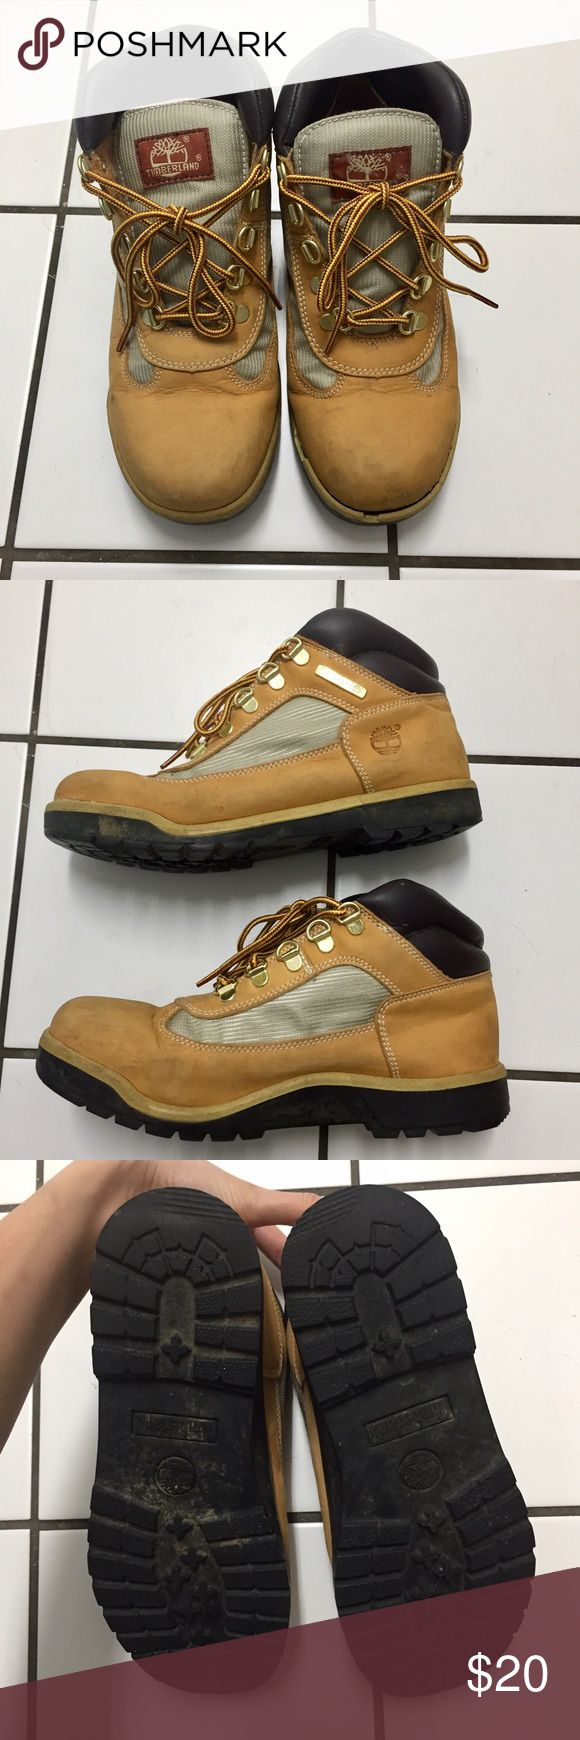 Timberland Field Boots Timberland Field Boots (Big Kids 6). Please see photo for wear. Timberland Shoes Boots